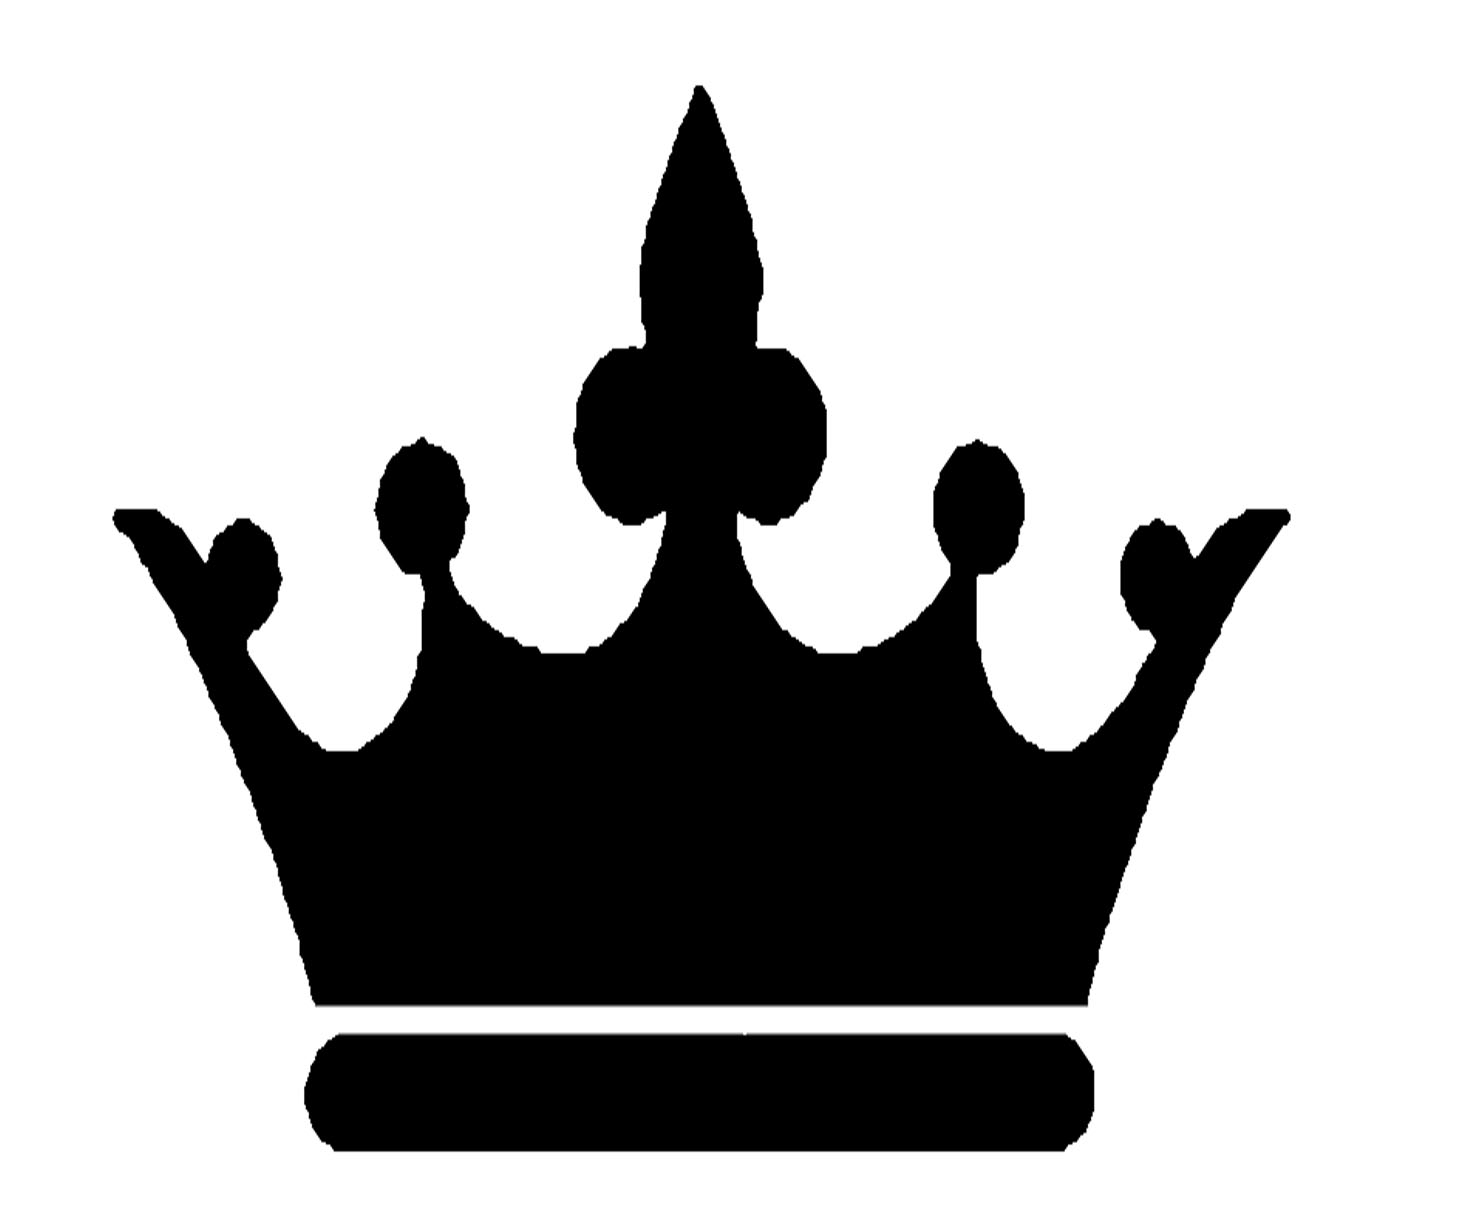 12 Simple Crown Clipart Free Cliparts Th-12 Simple Crown Clipart Free Cliparts That You Can Download To You-0